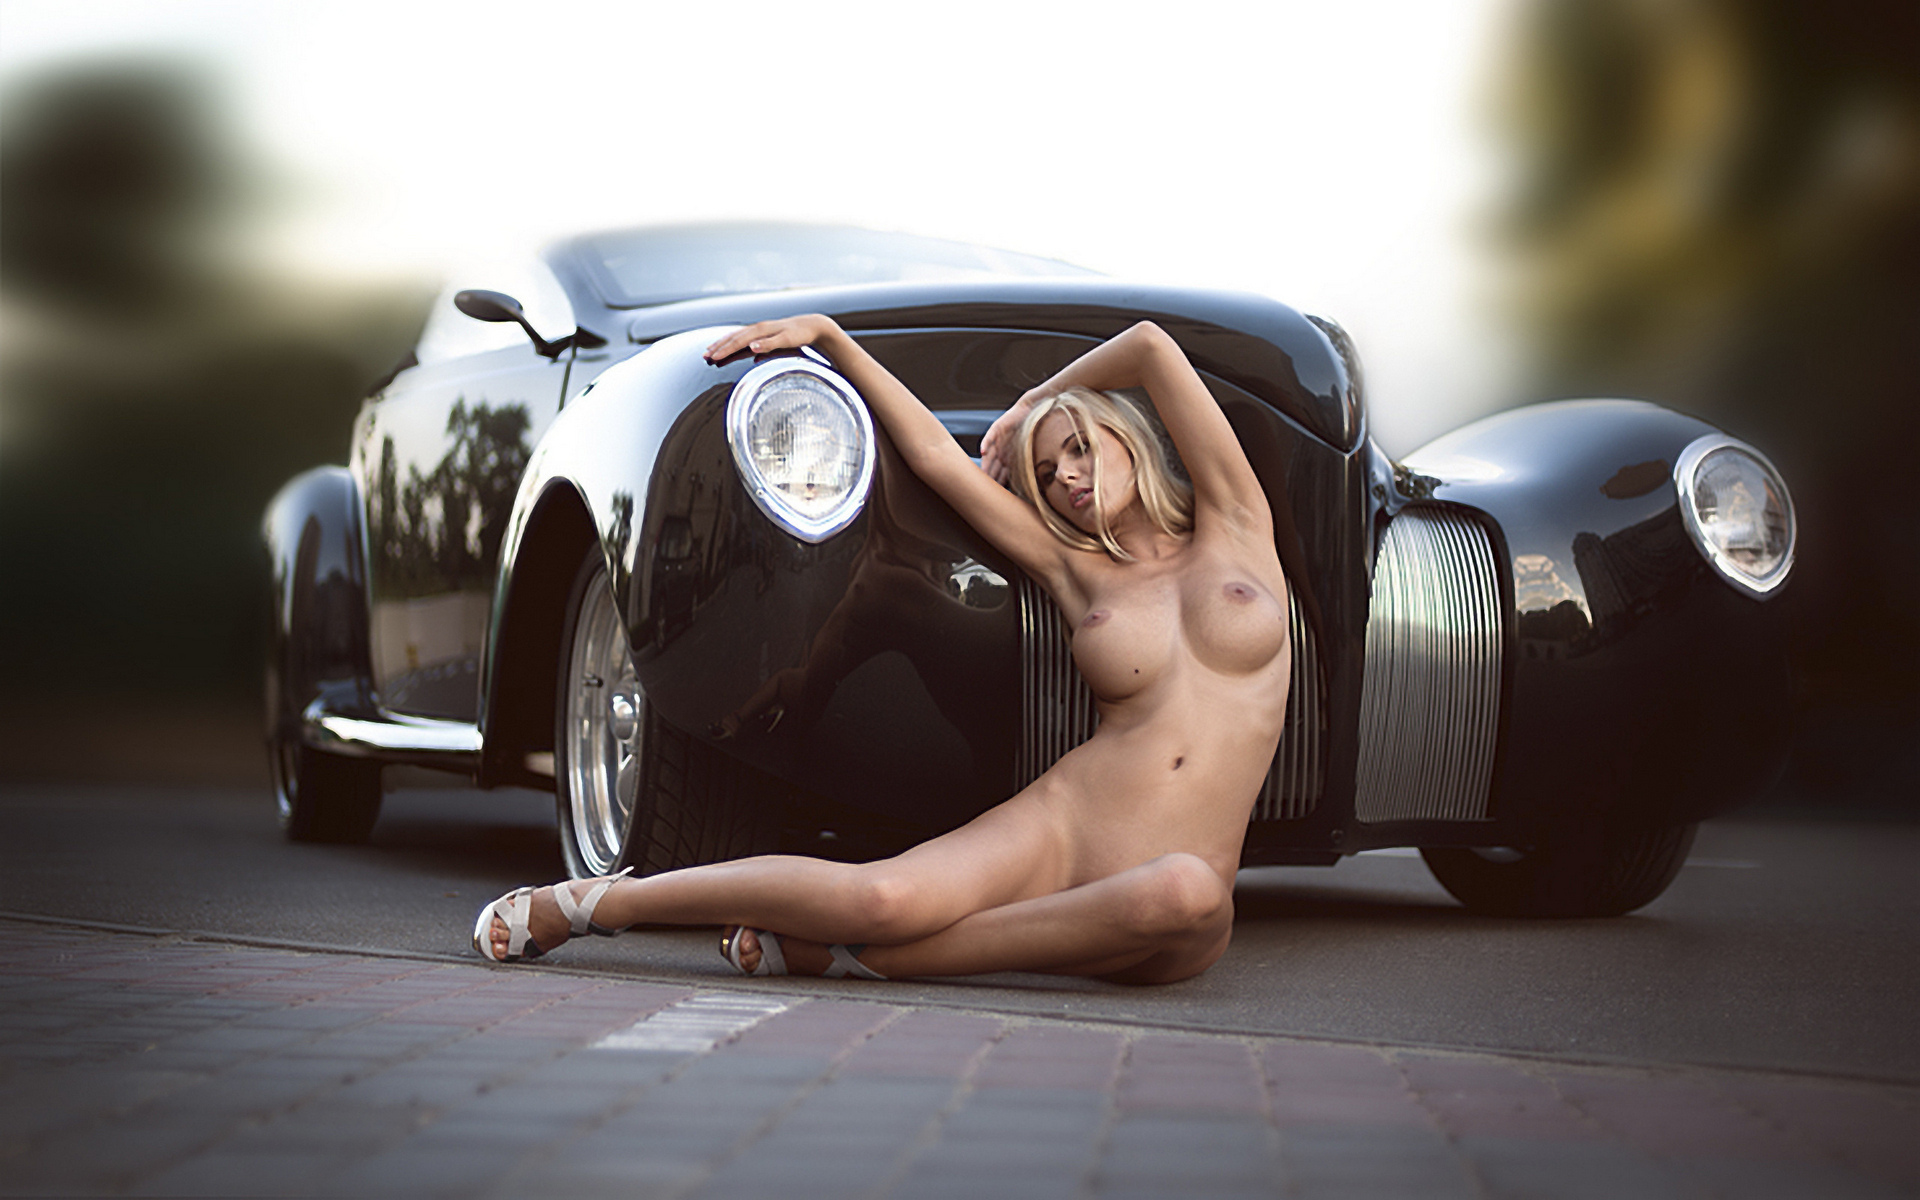 Nude car import girls, big natural cute porn